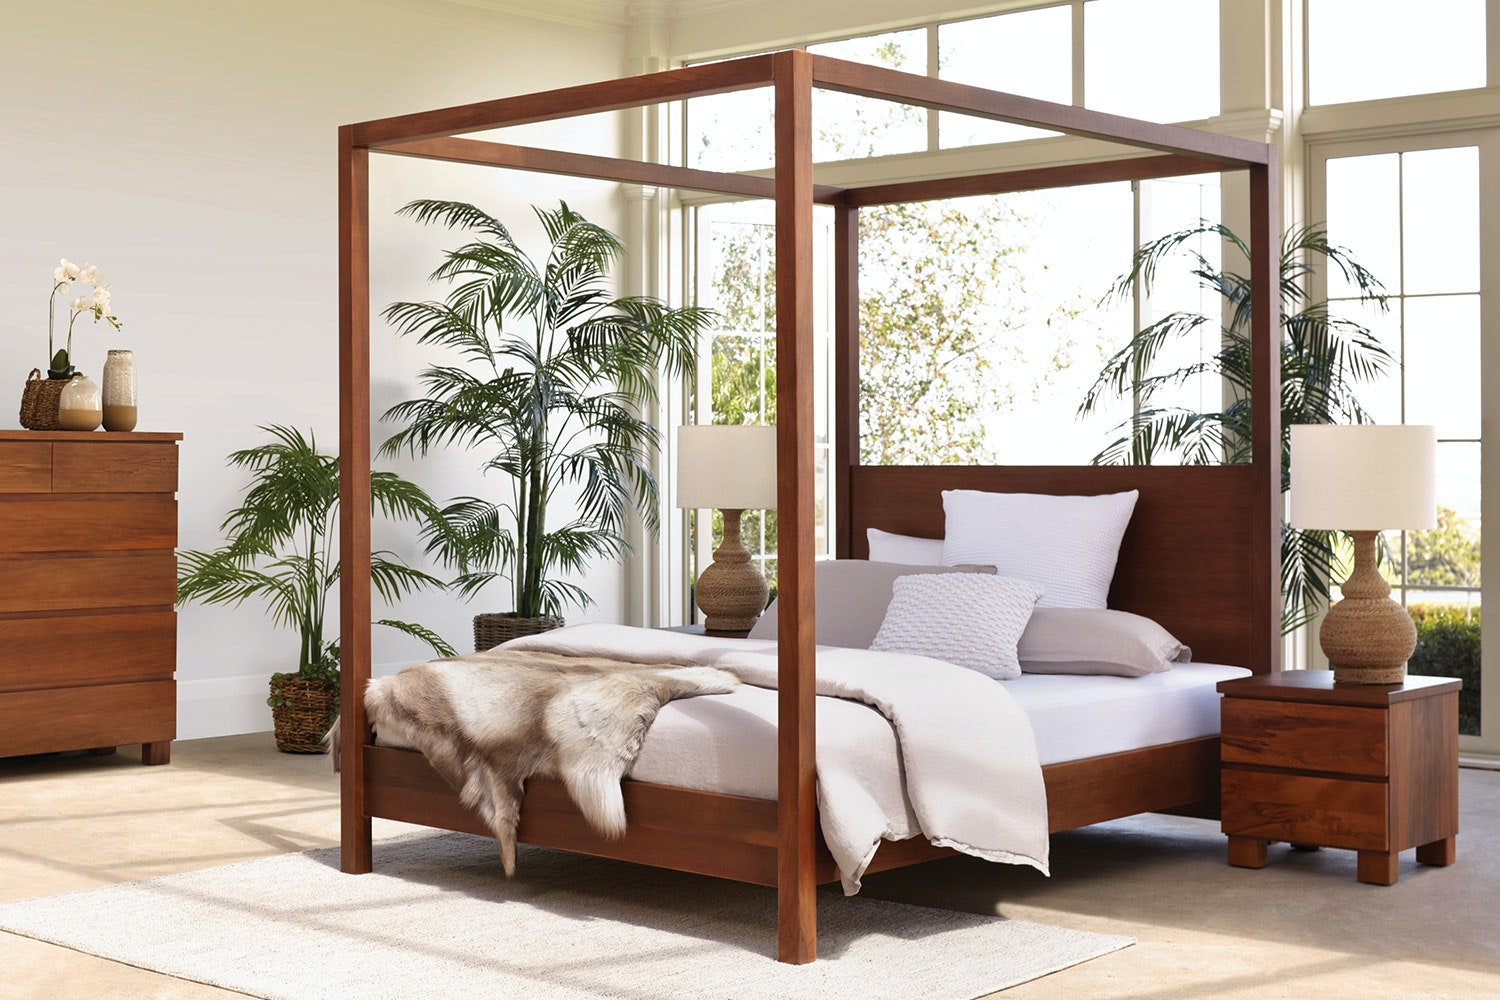 Picture of: Riverwood 4 Poster Queen Bed Frame By Sorensen Furniture Harvey Norman New Zealand